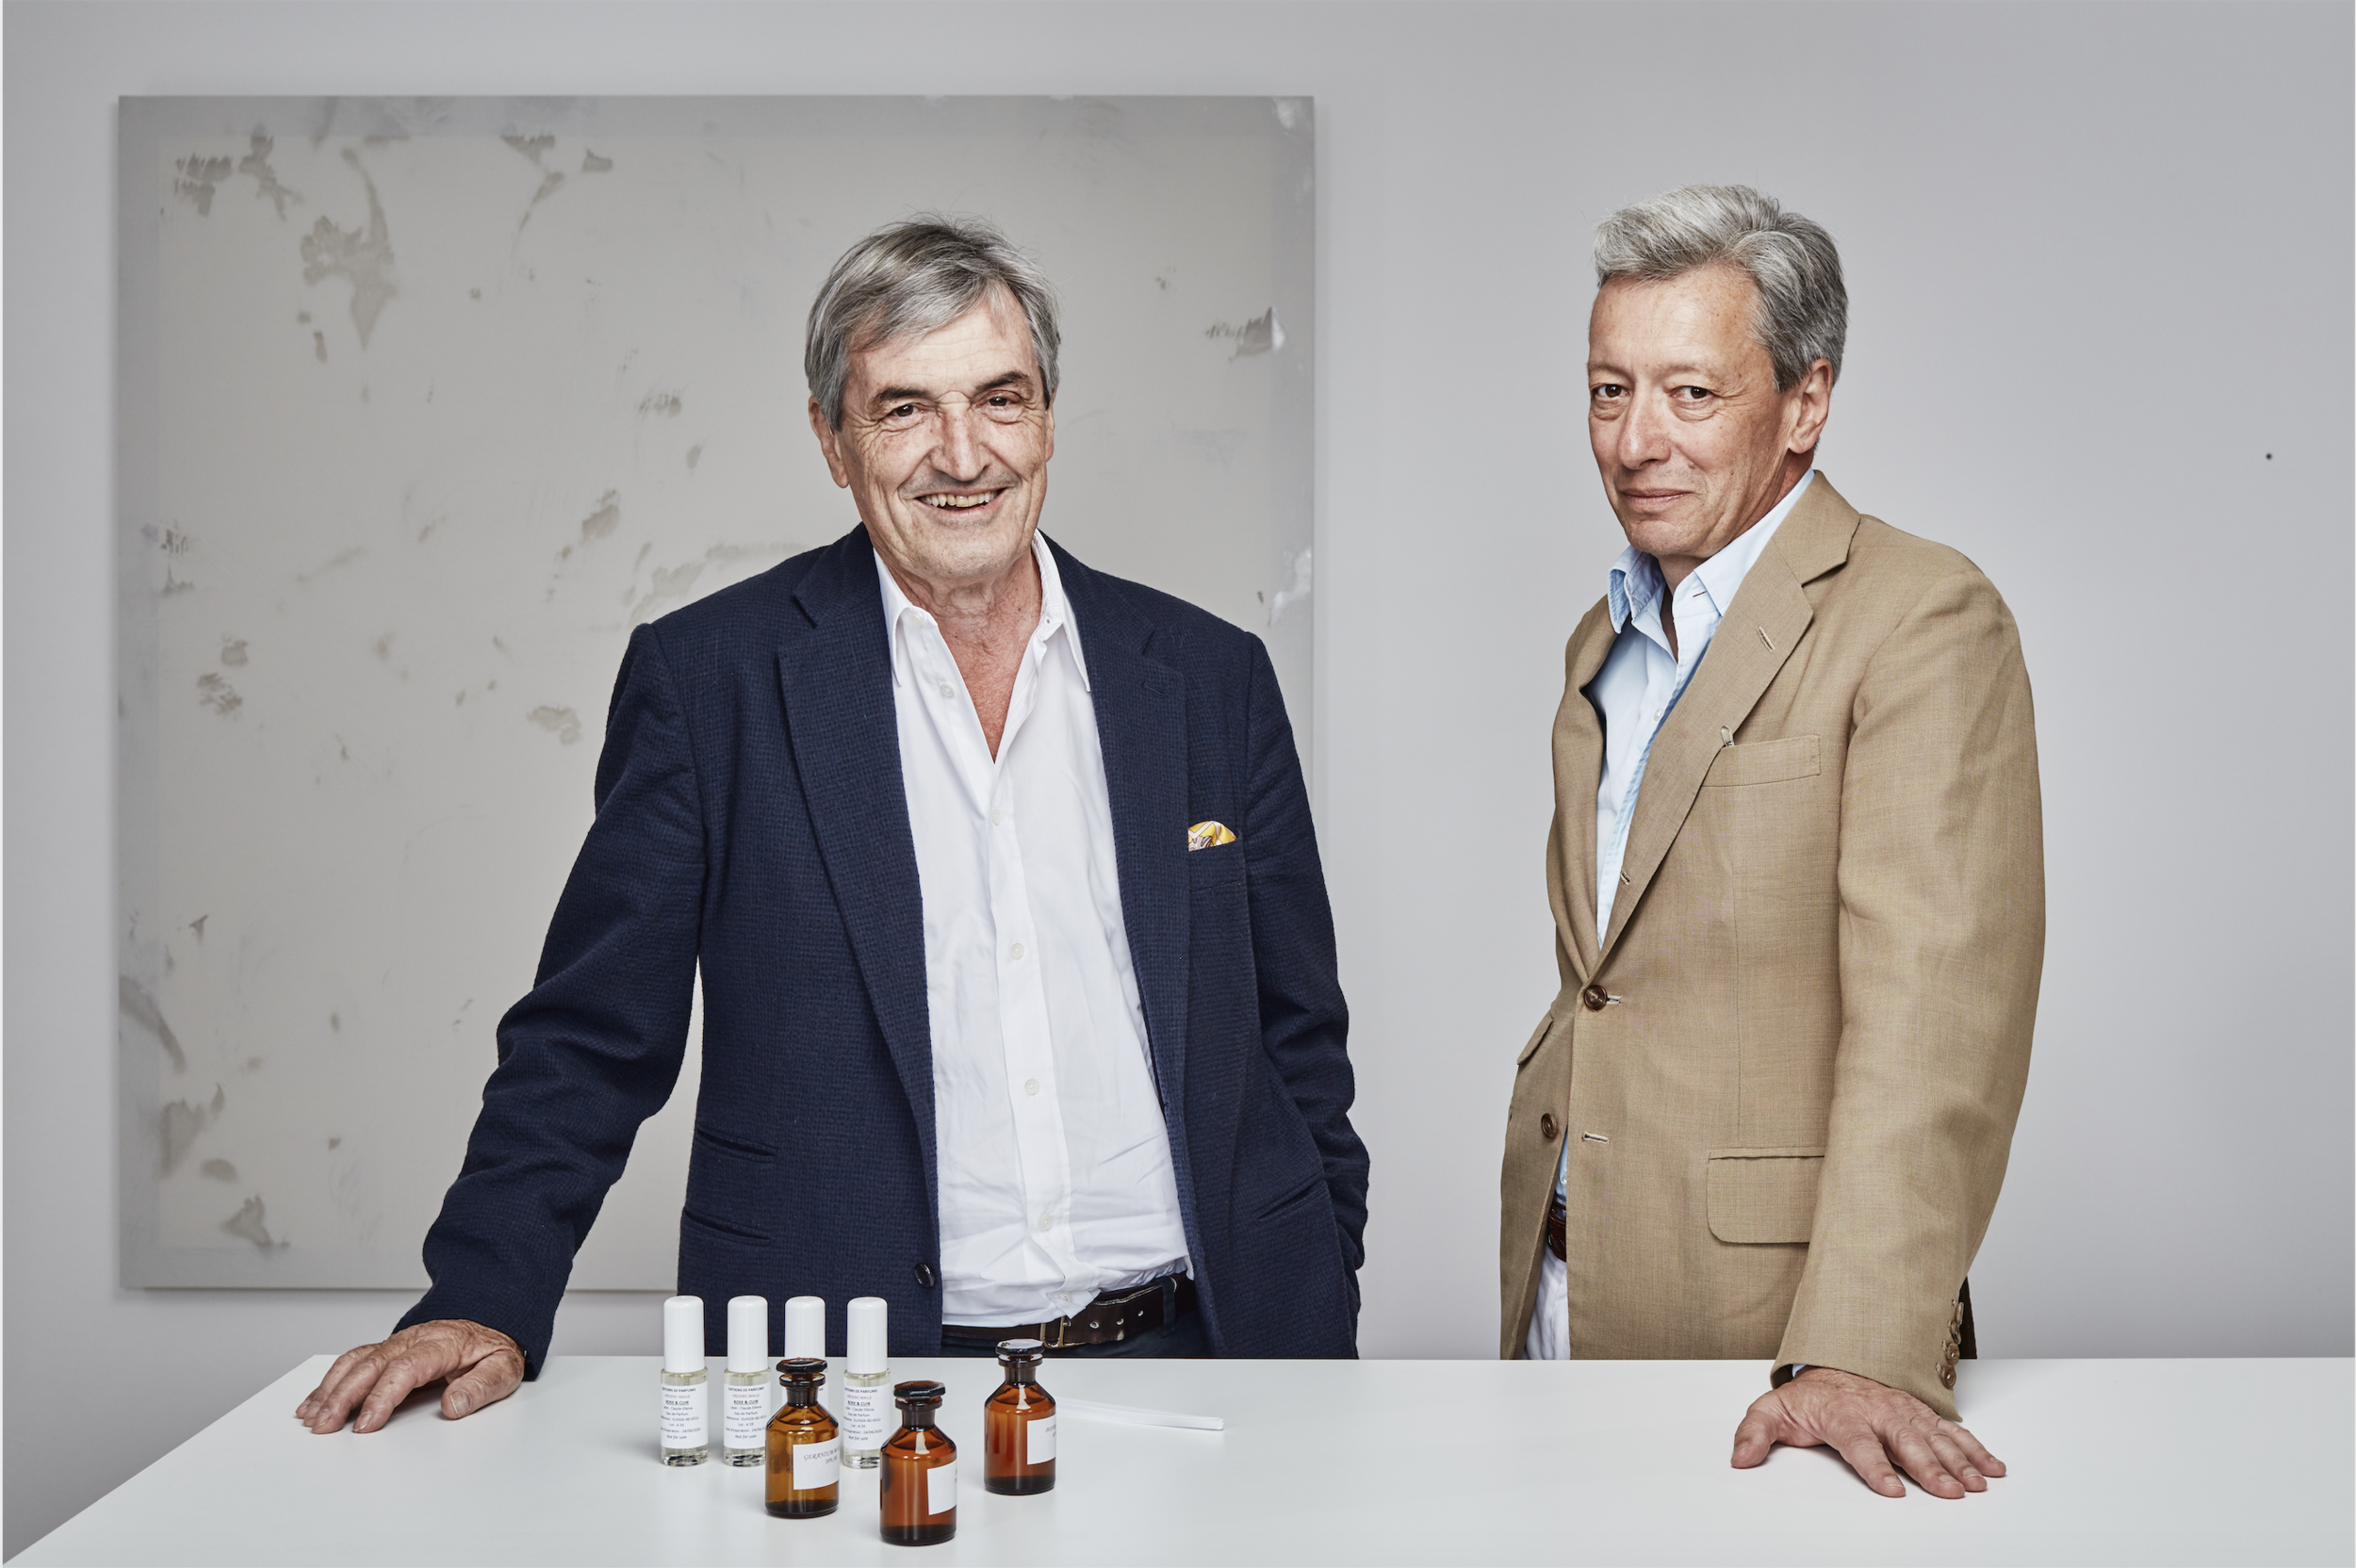 Master perfumer Jean-Claude Ellena and fragrance editor and publisher Frédéric Malle of Editions de Parfums, 2019.